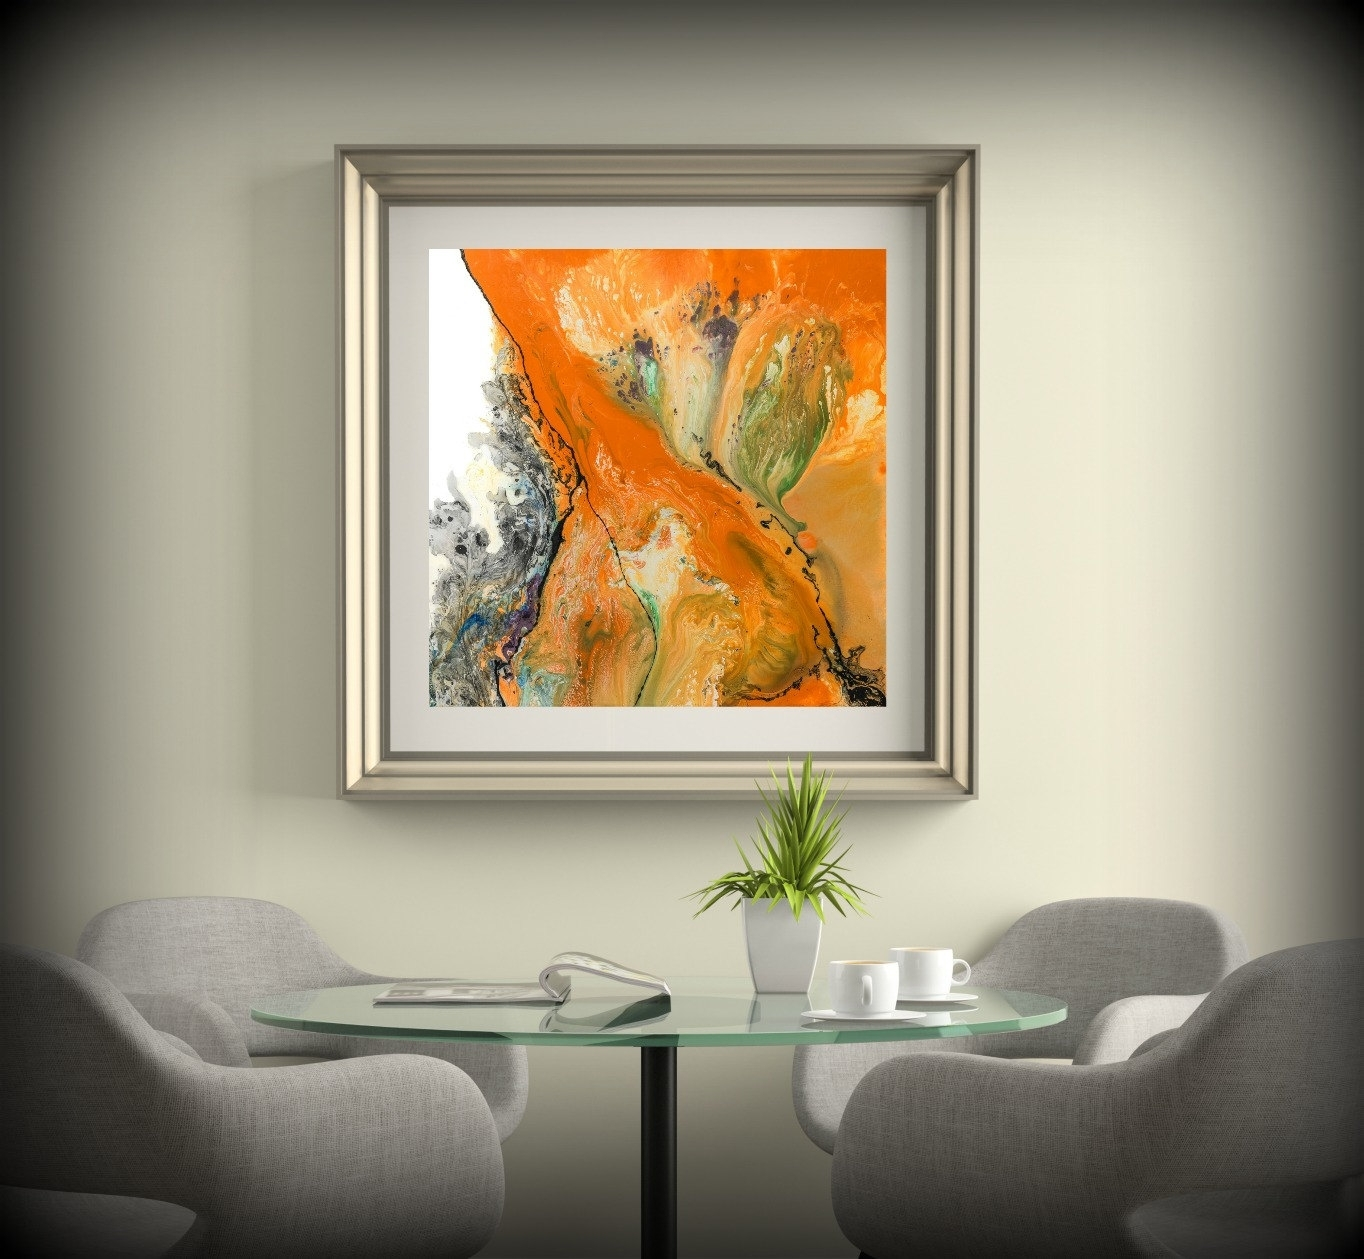 Living Room Decor Square Wall Decor Orange Wall Art Dining Room Within Most Popular Canvas Wall Art For Dining Room (View 12 of 15)